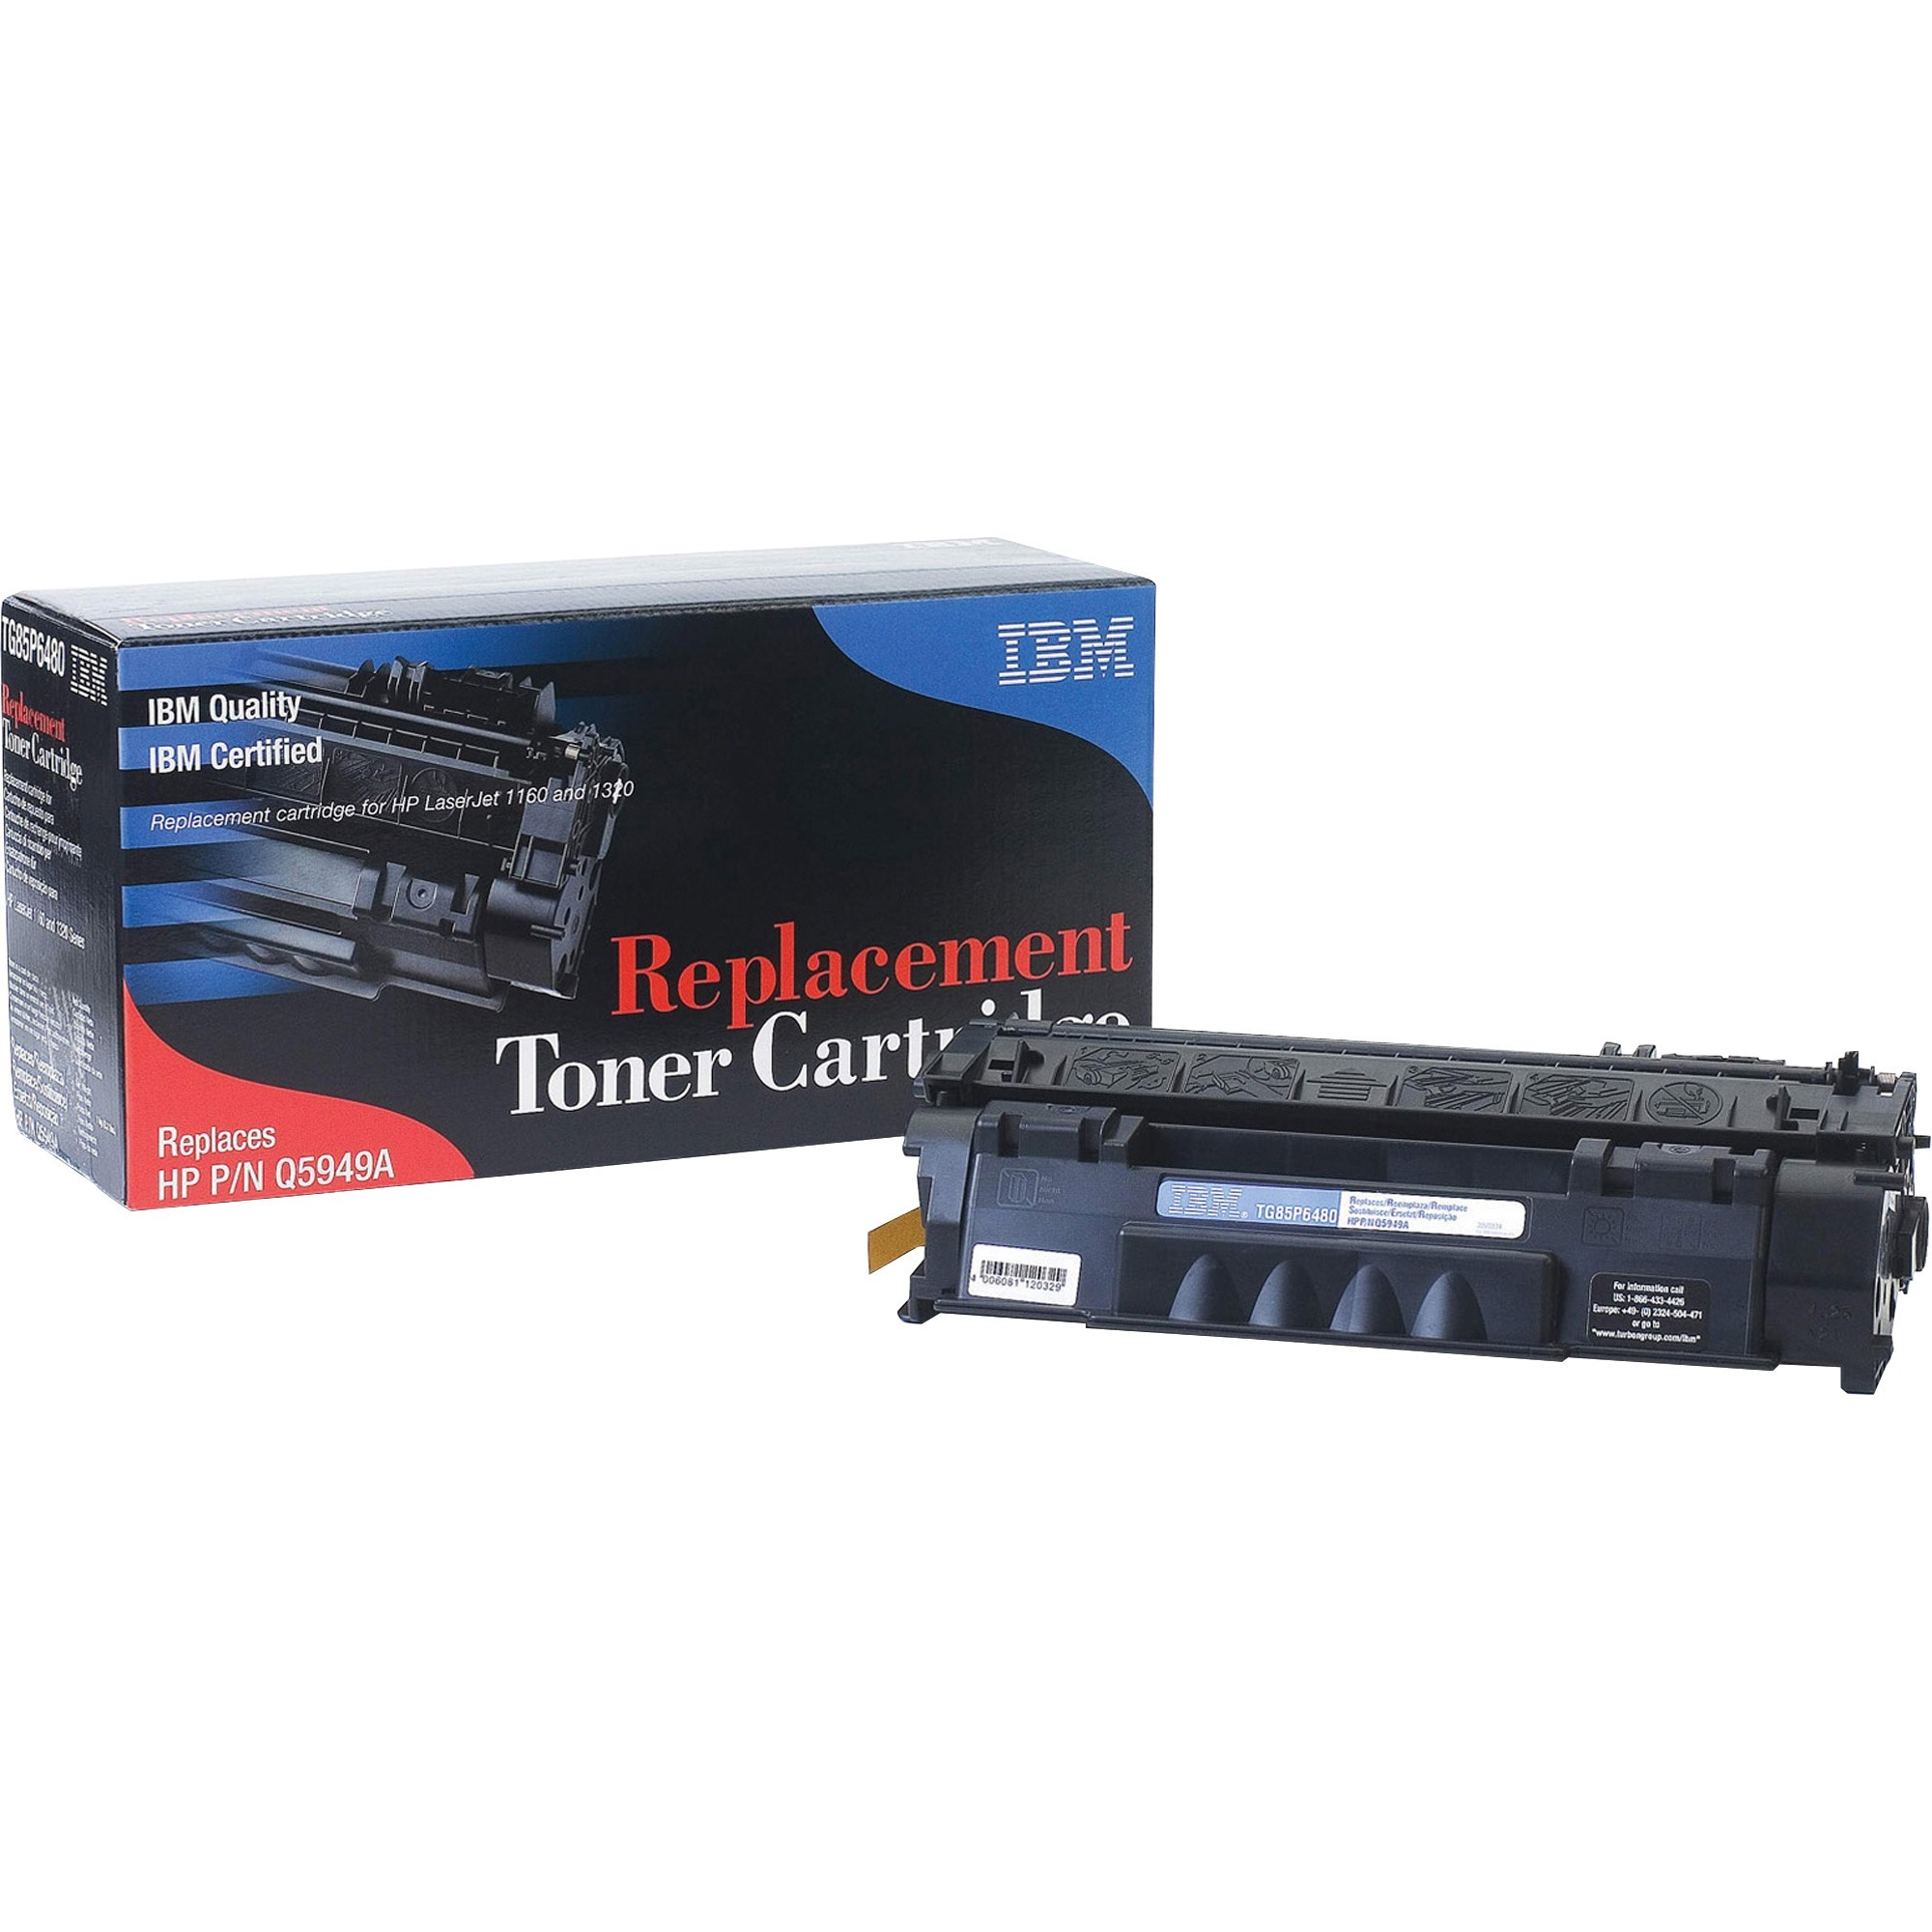 IBM TG85P7001/002 Toner Cartridges